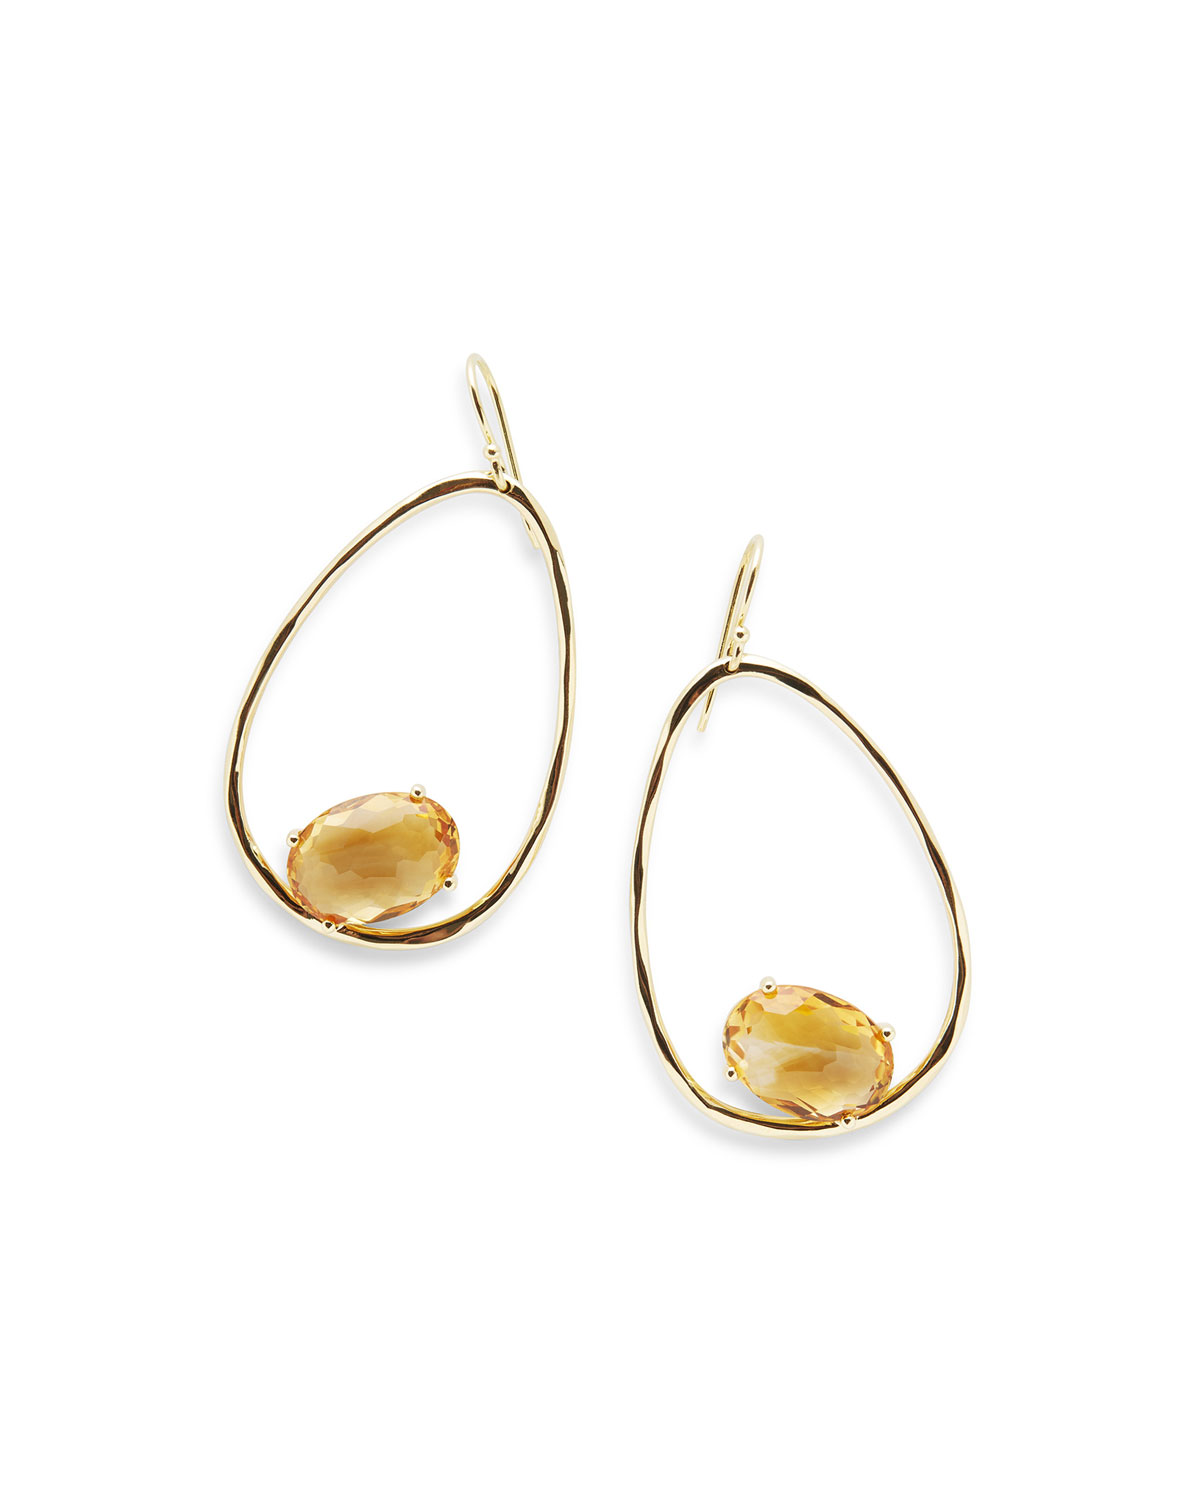 Ippolita 18K Rock Candy Tipped Oval Wire Earrings in Mother-of-Pearl h1AvwkQ